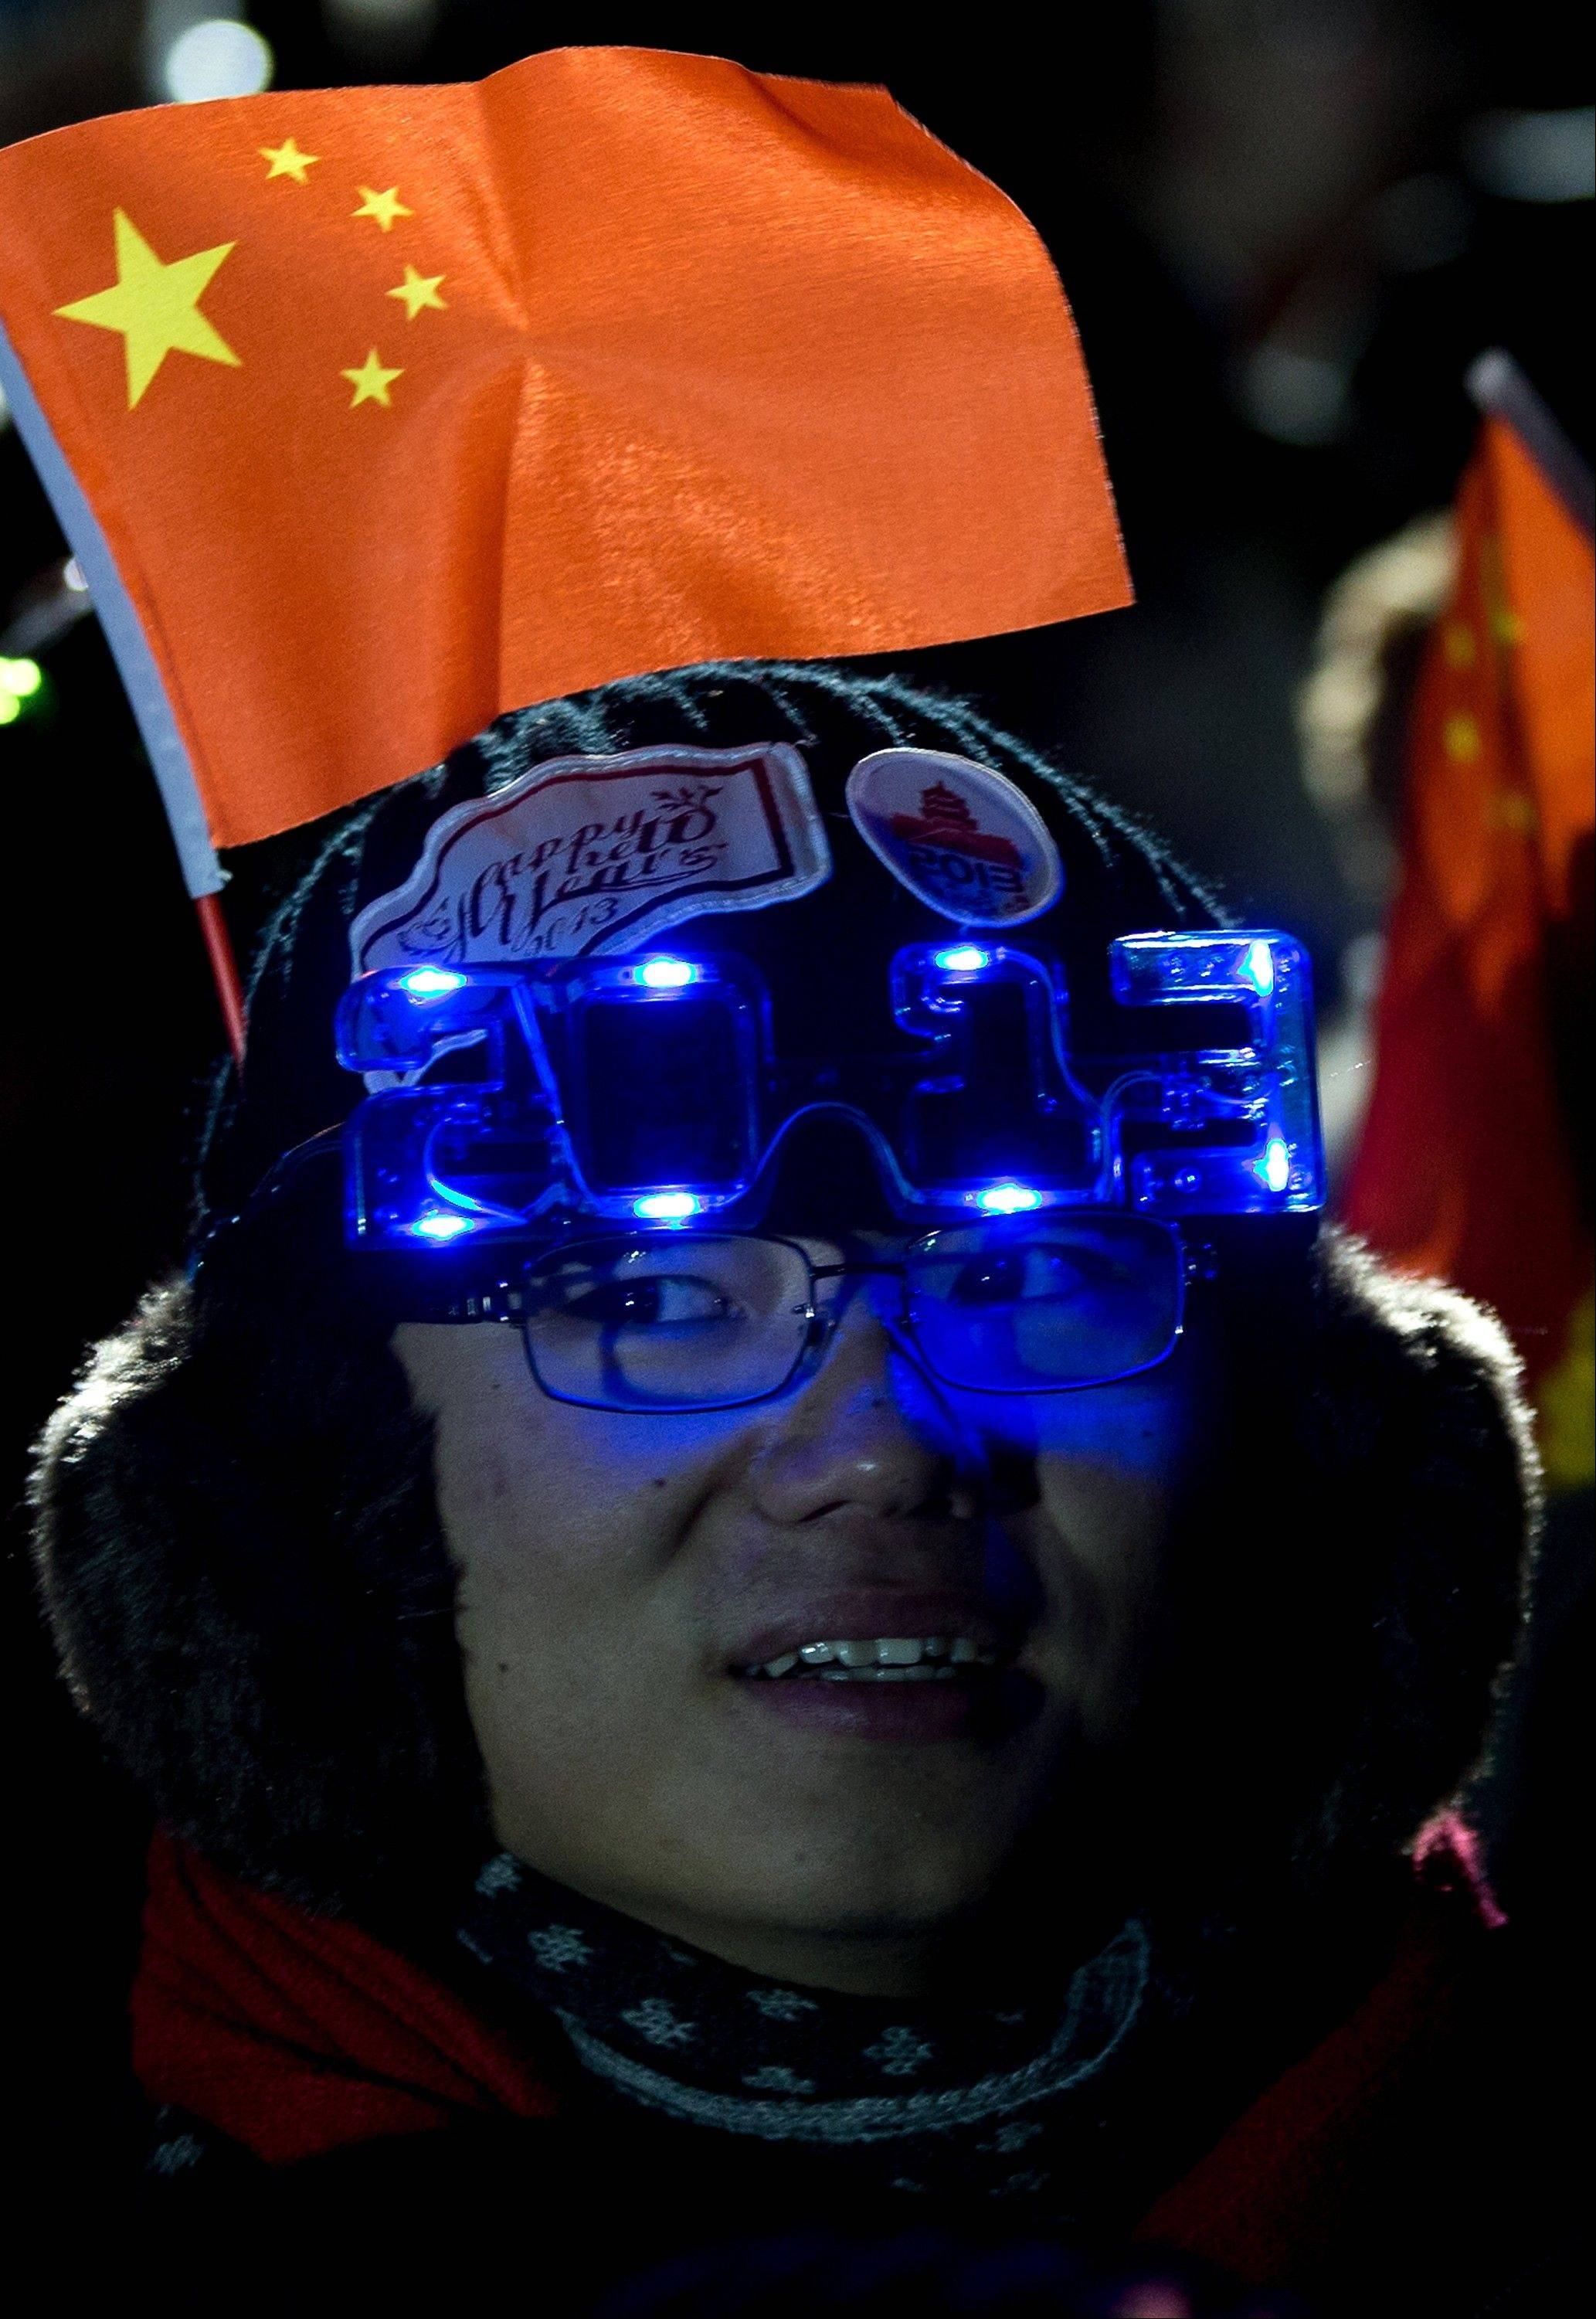 A Chinese man wears 2013-style glasses and a national flag as he celebrates the new year during a count-down event at the Summer Palace in Beijing Tuesday, Jan. 1, 2013.